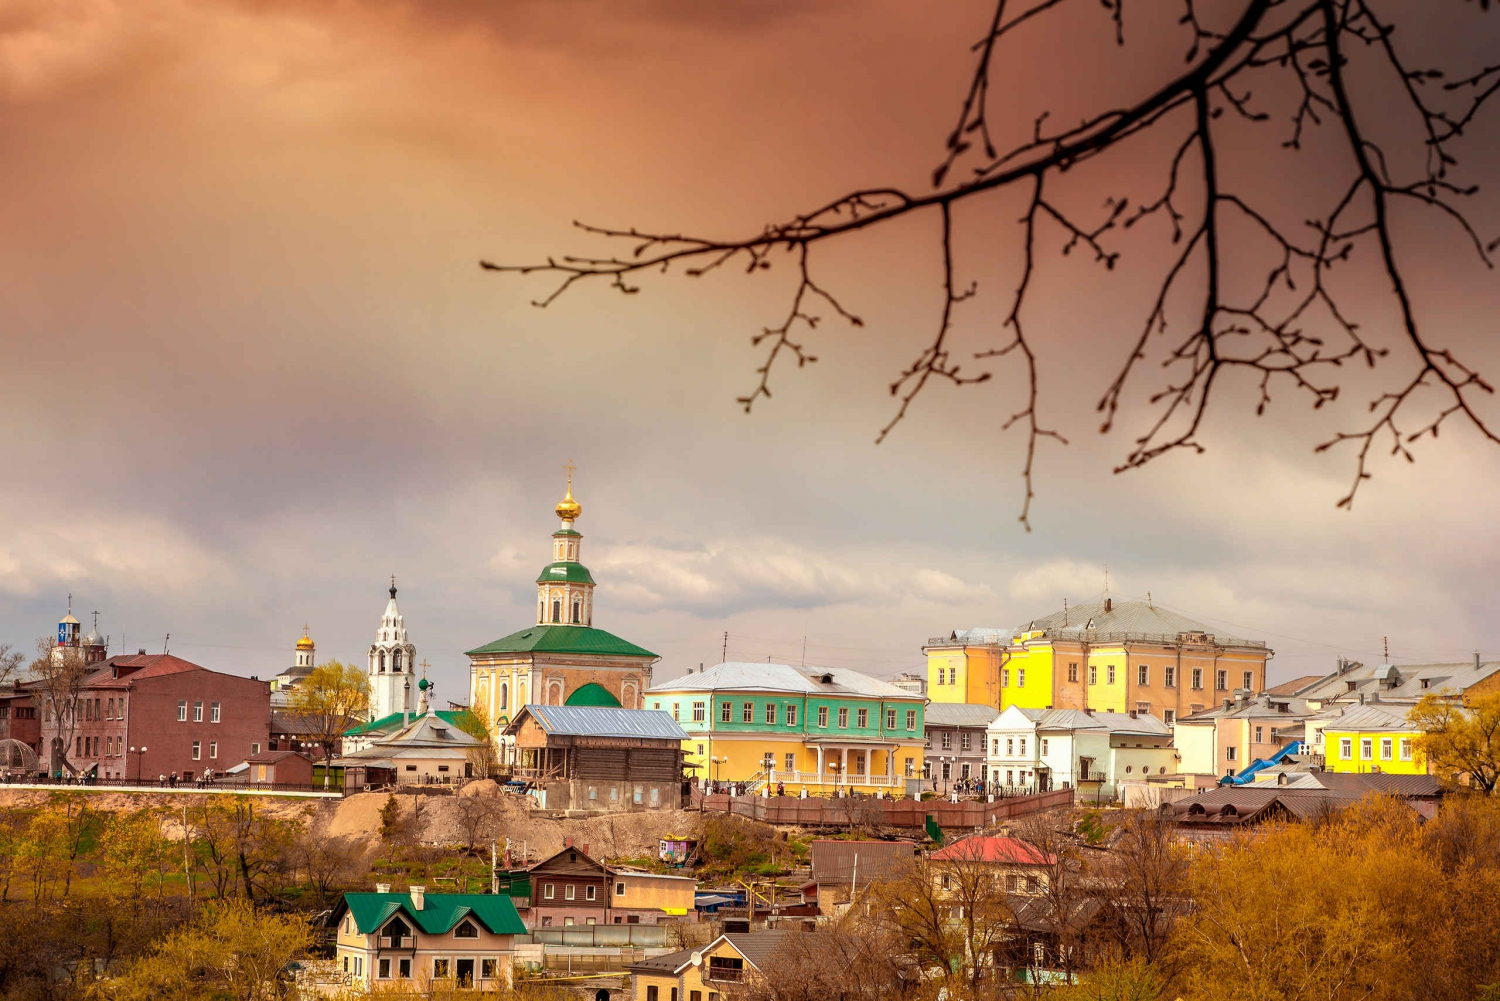 Full Day Tour - Vladimir, Bogolyubovo, Suzdal - From Moscow